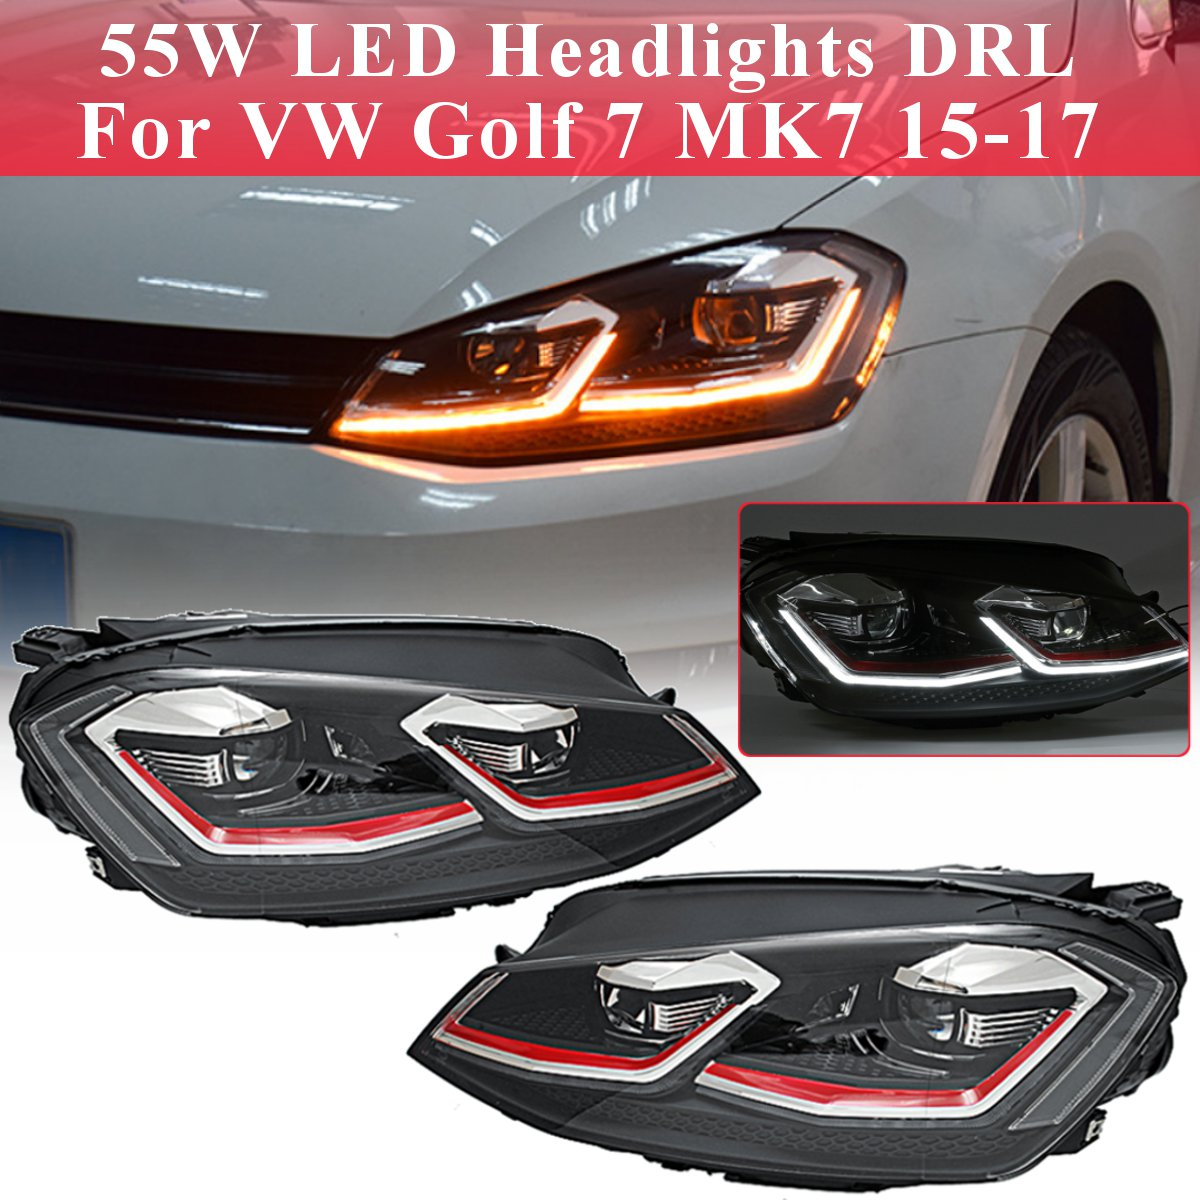 For VW Golf 7 MK7 Car Styling Head Lamp Case Clear LED Headlights DRL Lens Double Beam Bi-Xenon For Golf 7 2015 2016 2017